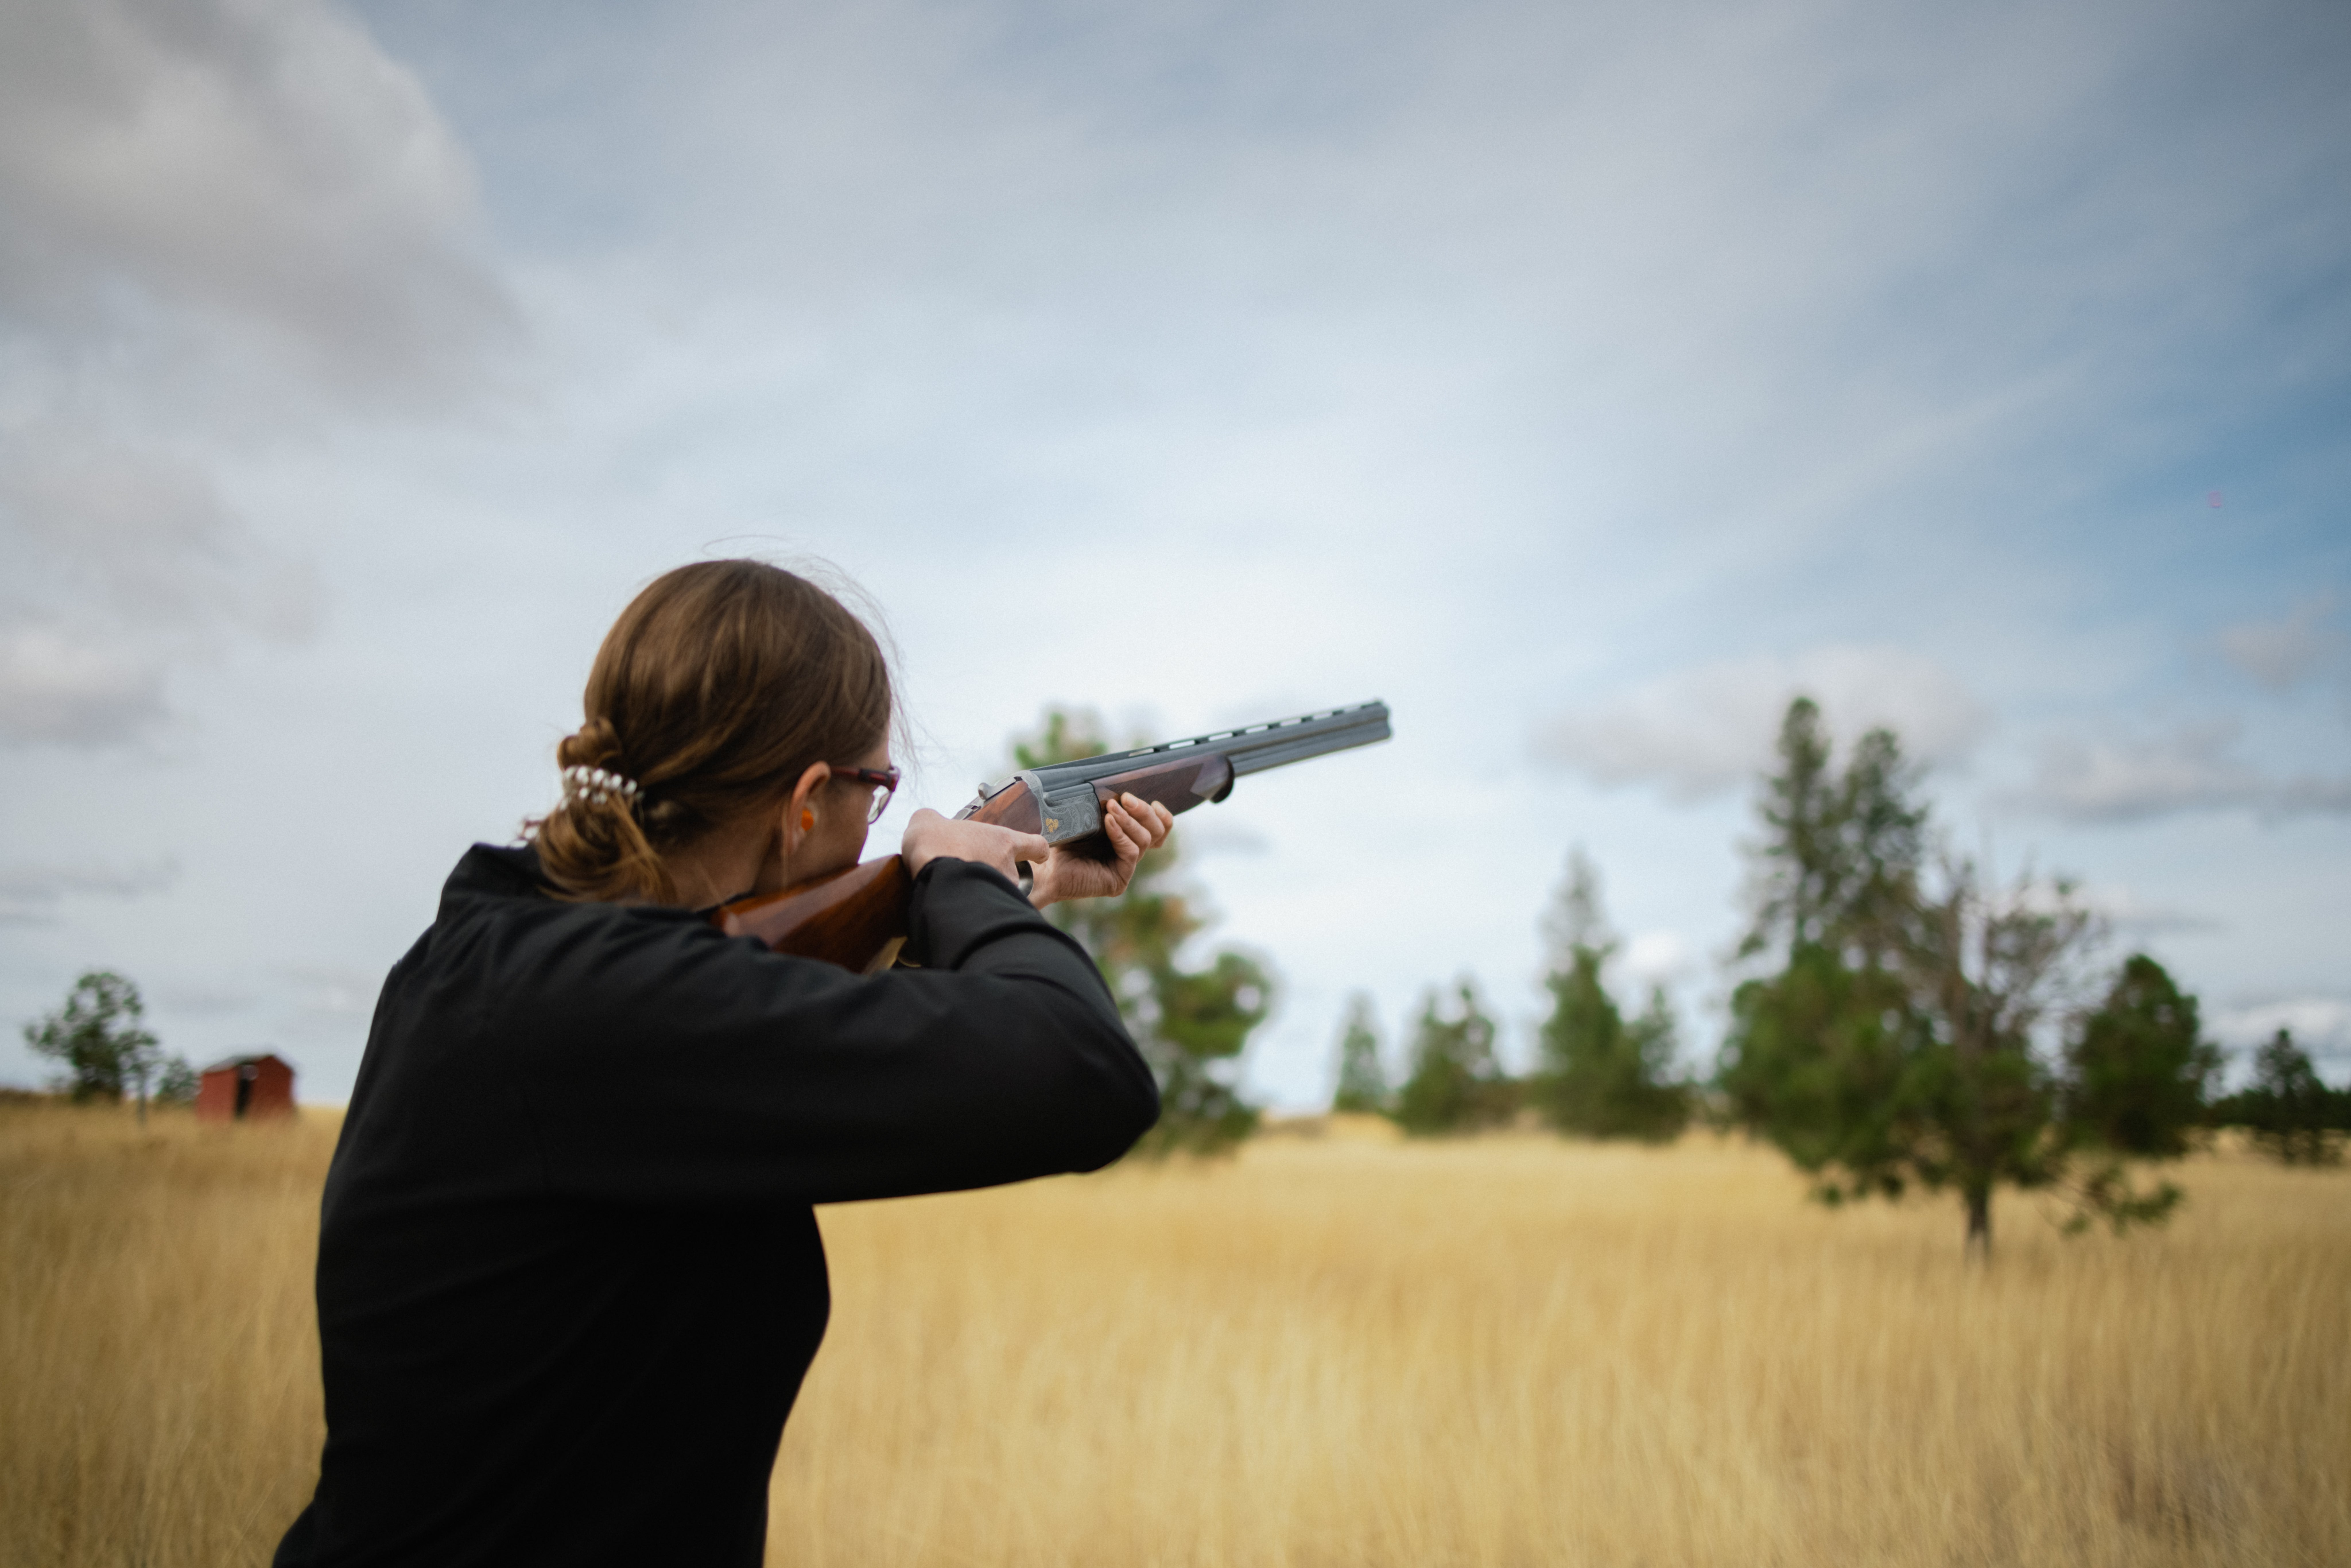 Female shooters need a different fit in their shotguns.